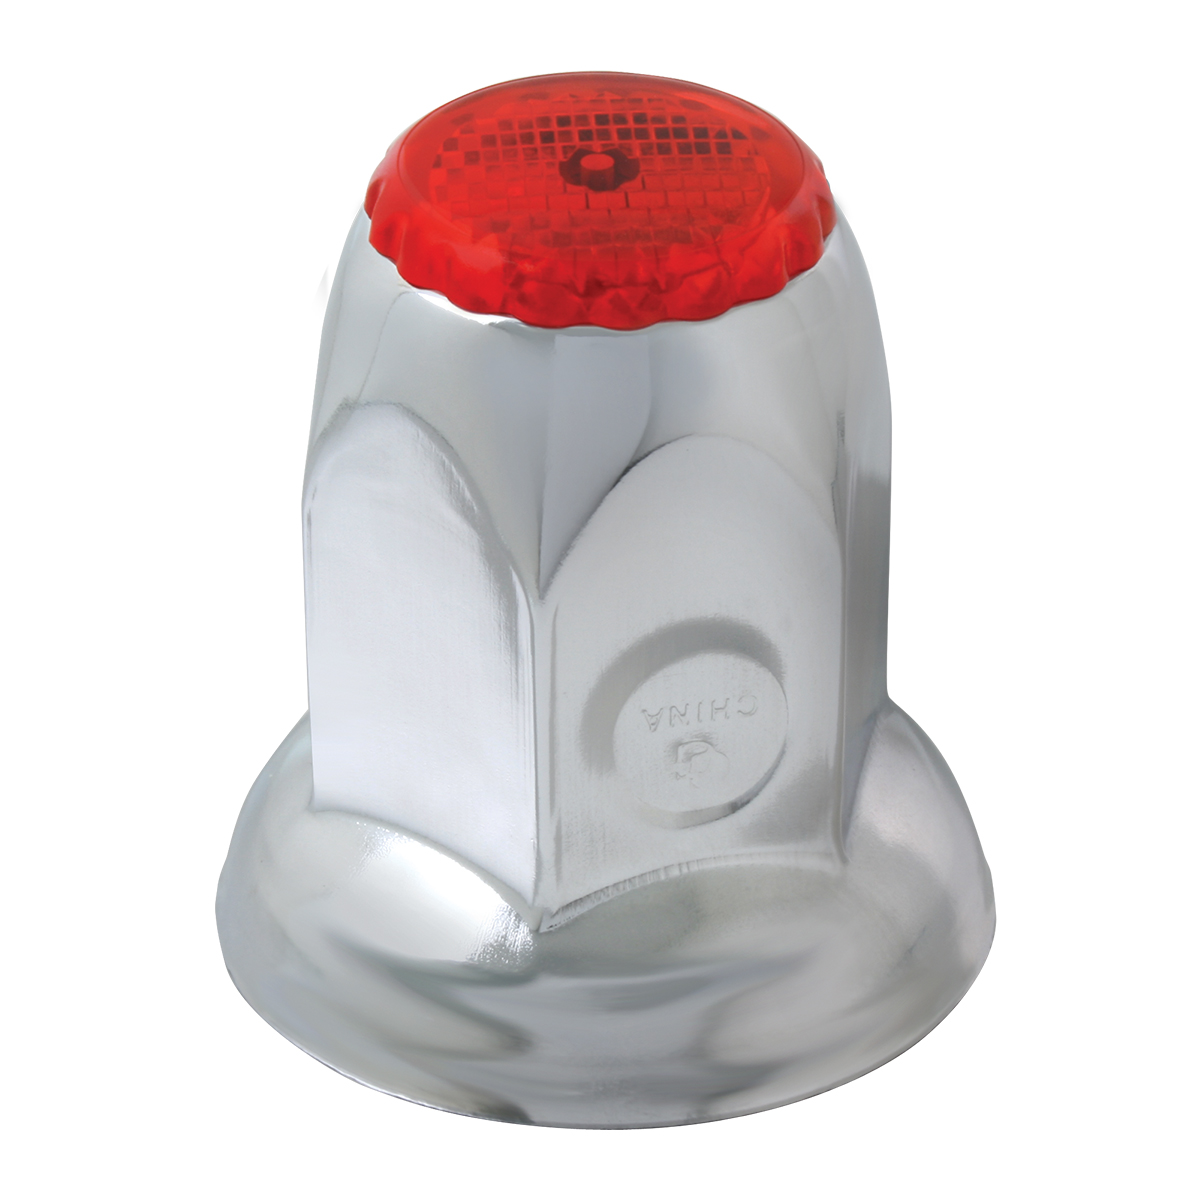 Classic Stainless Steel 33mm Push-On Lug Nut Cover w/ Red Reflector